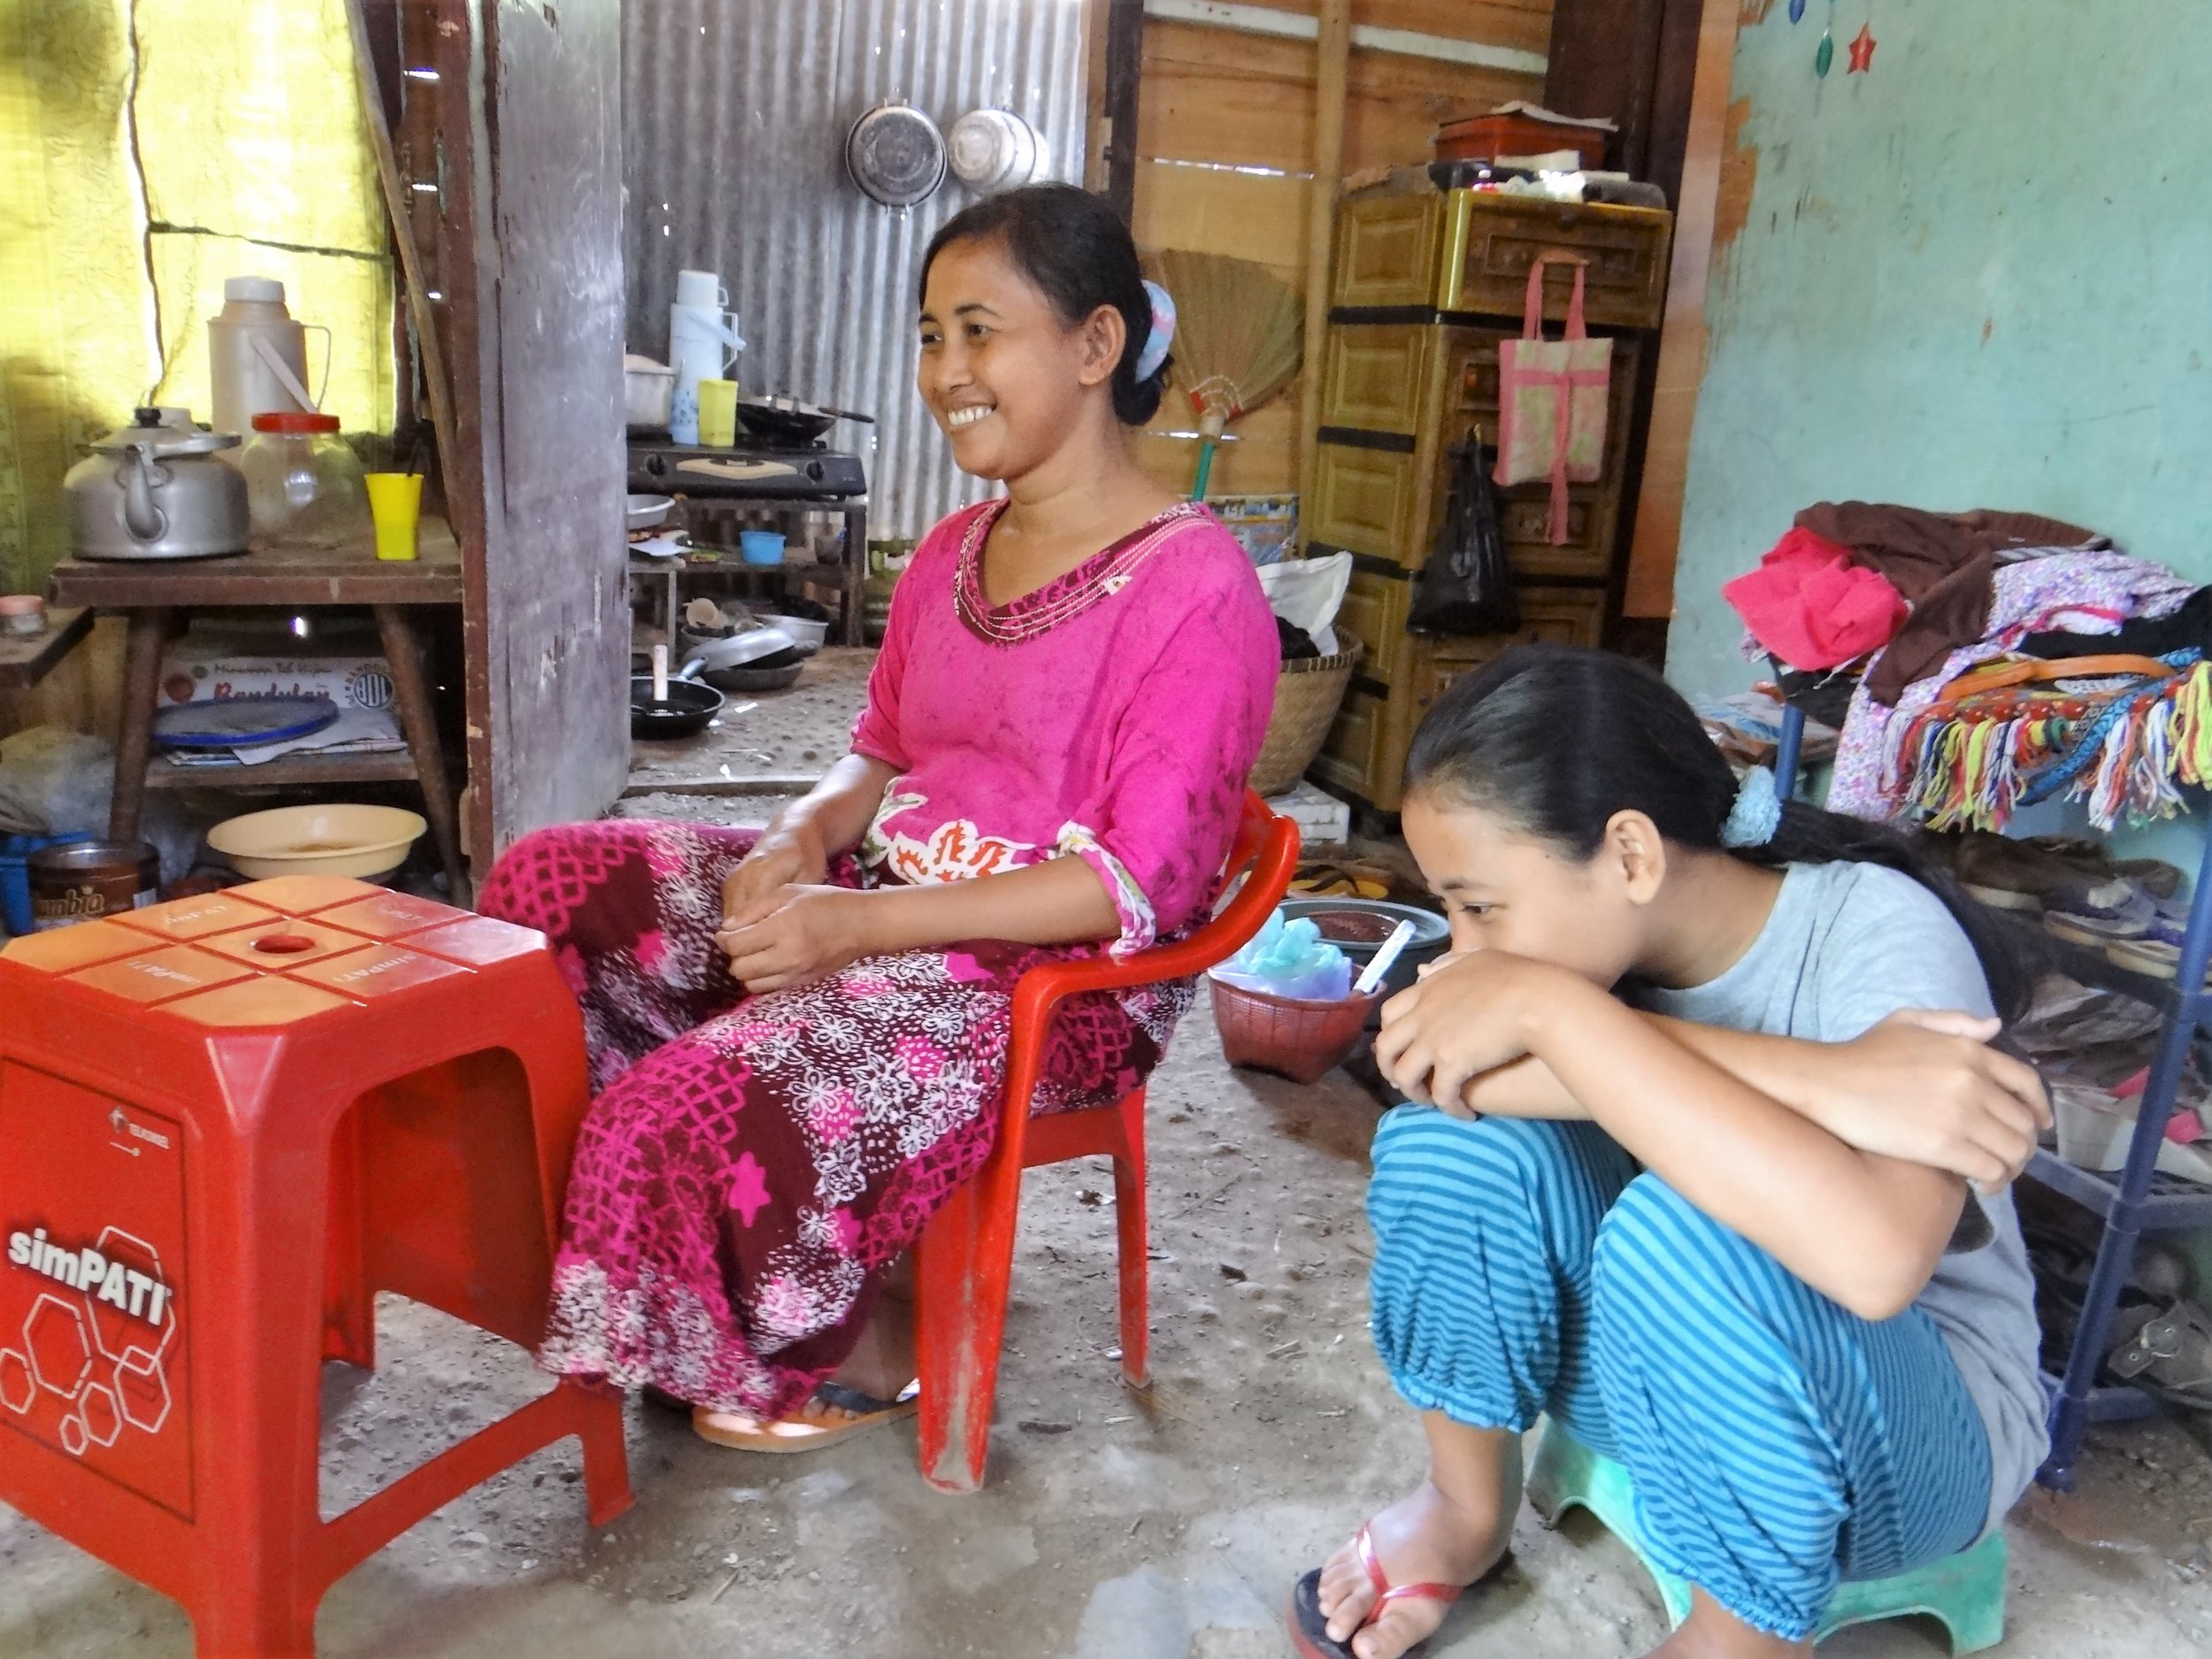 Juntos conducts field research in Indonesia, the latest market it has begun to serve.